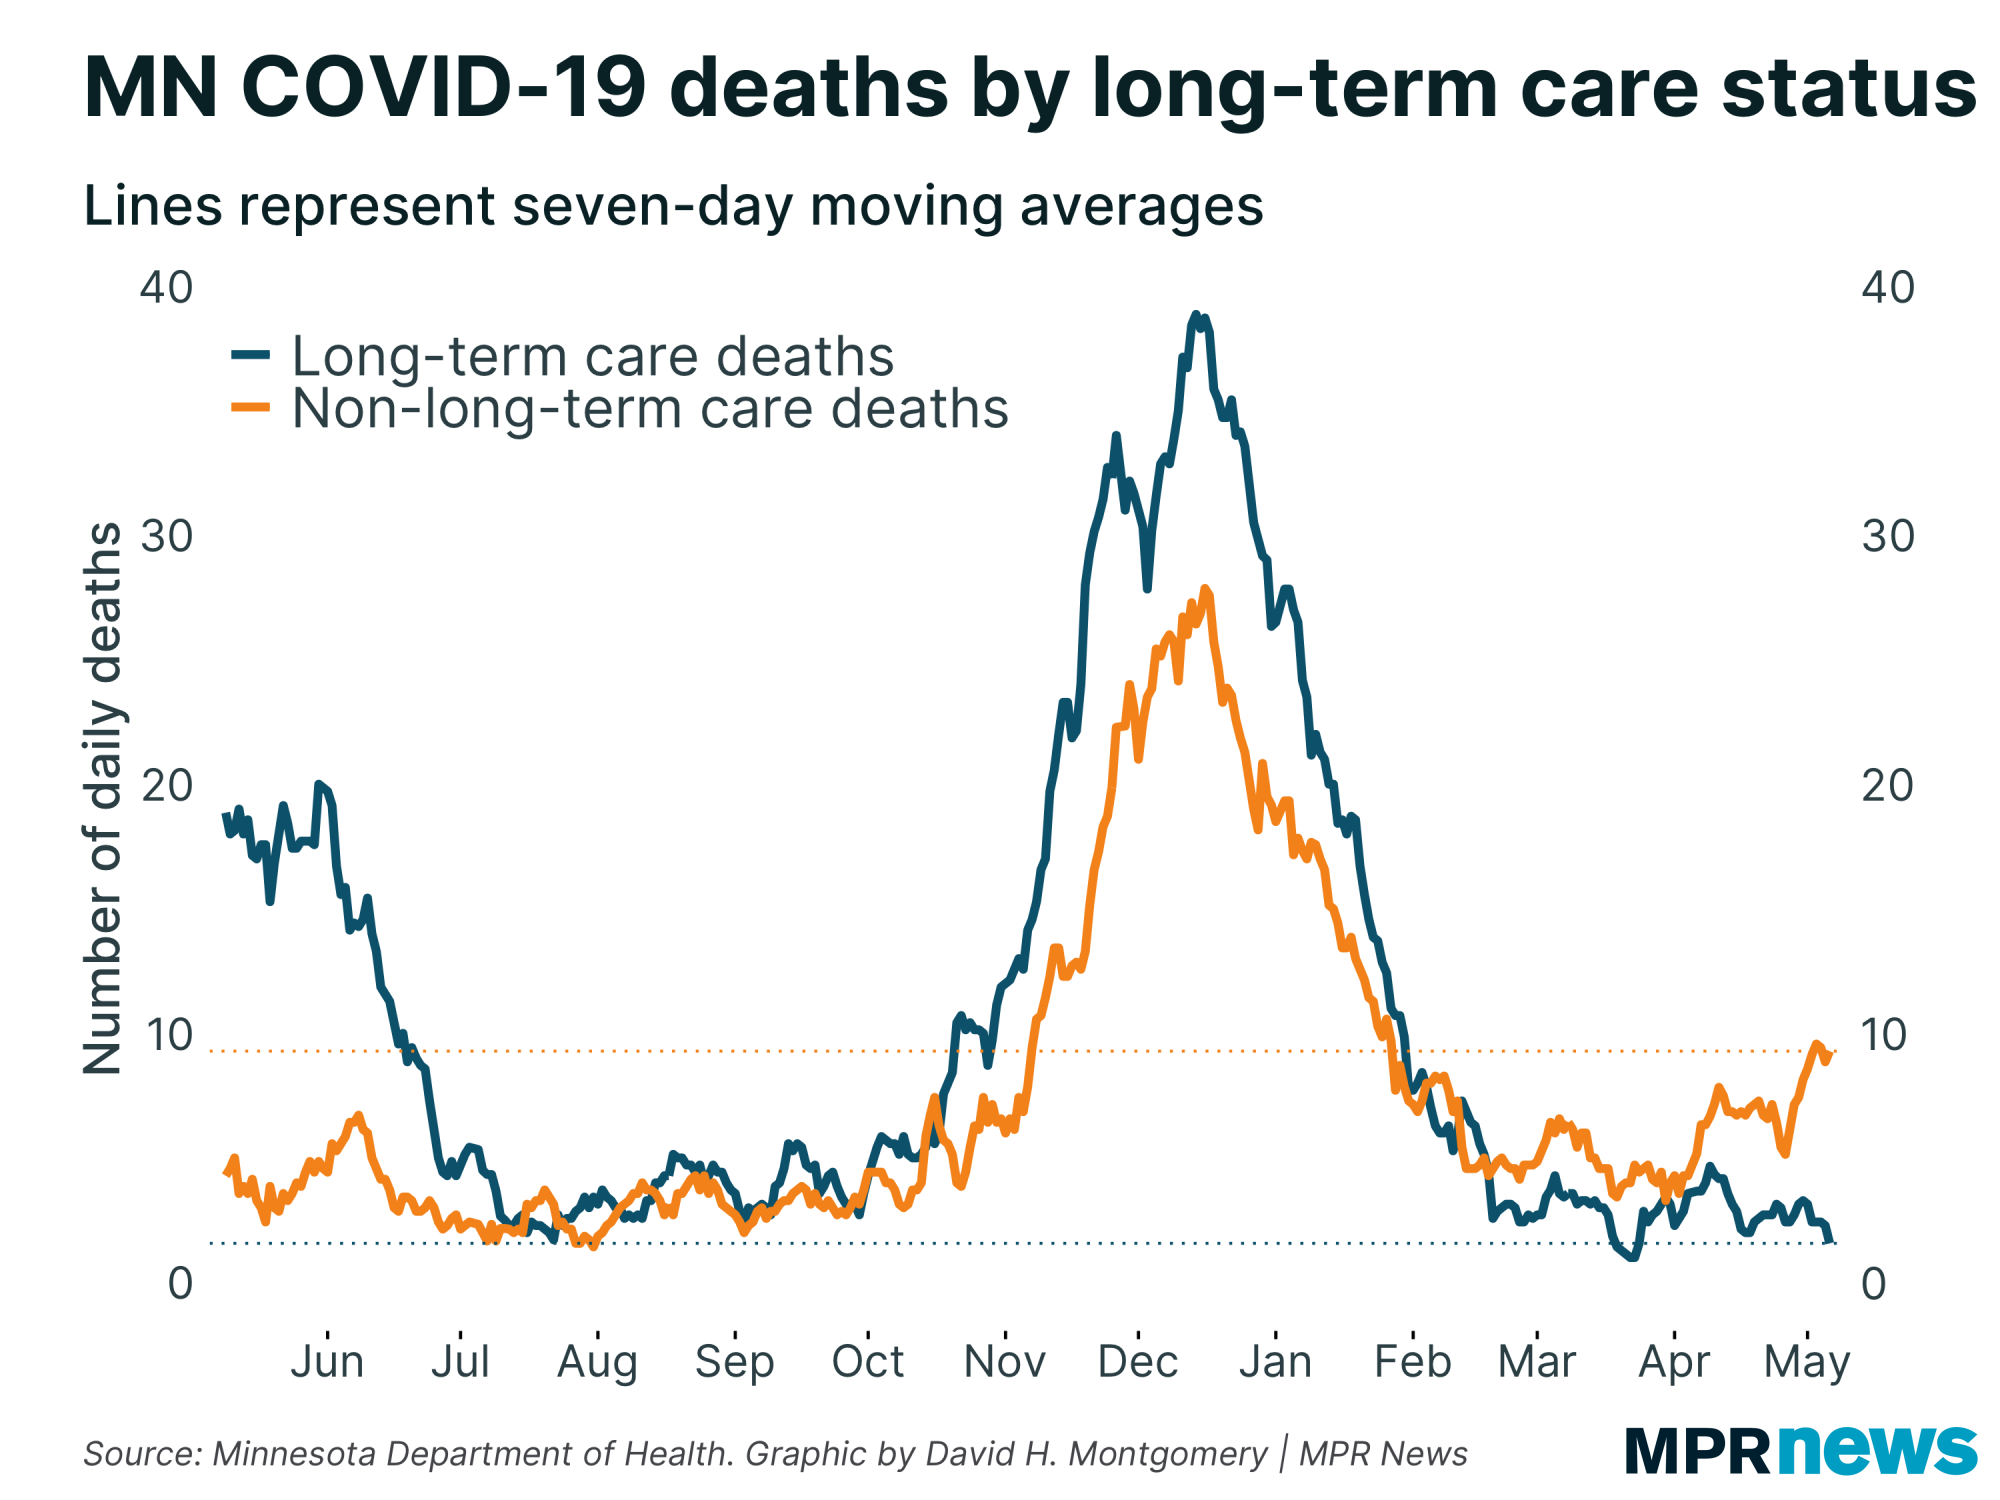 Minnesota COVID-19 deaths by long-term care status